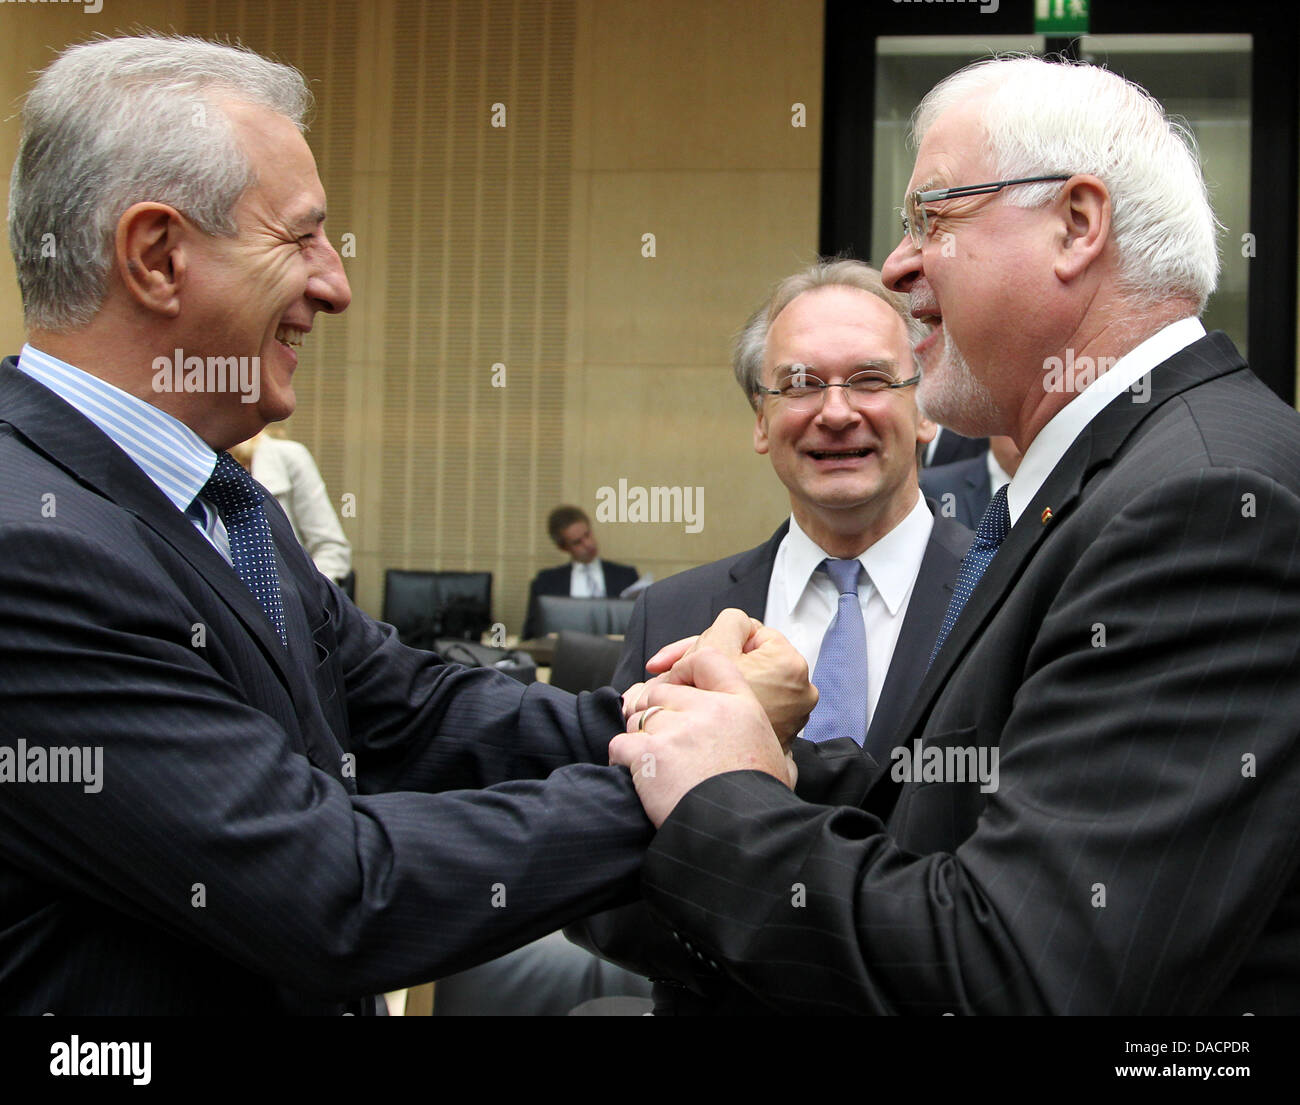 The Prime Ministers, Stanislaw Tillich of Saxony, Reiner Haseloff of Saxony-Anhalt and Peter Harry Carstensen of - Stock Image